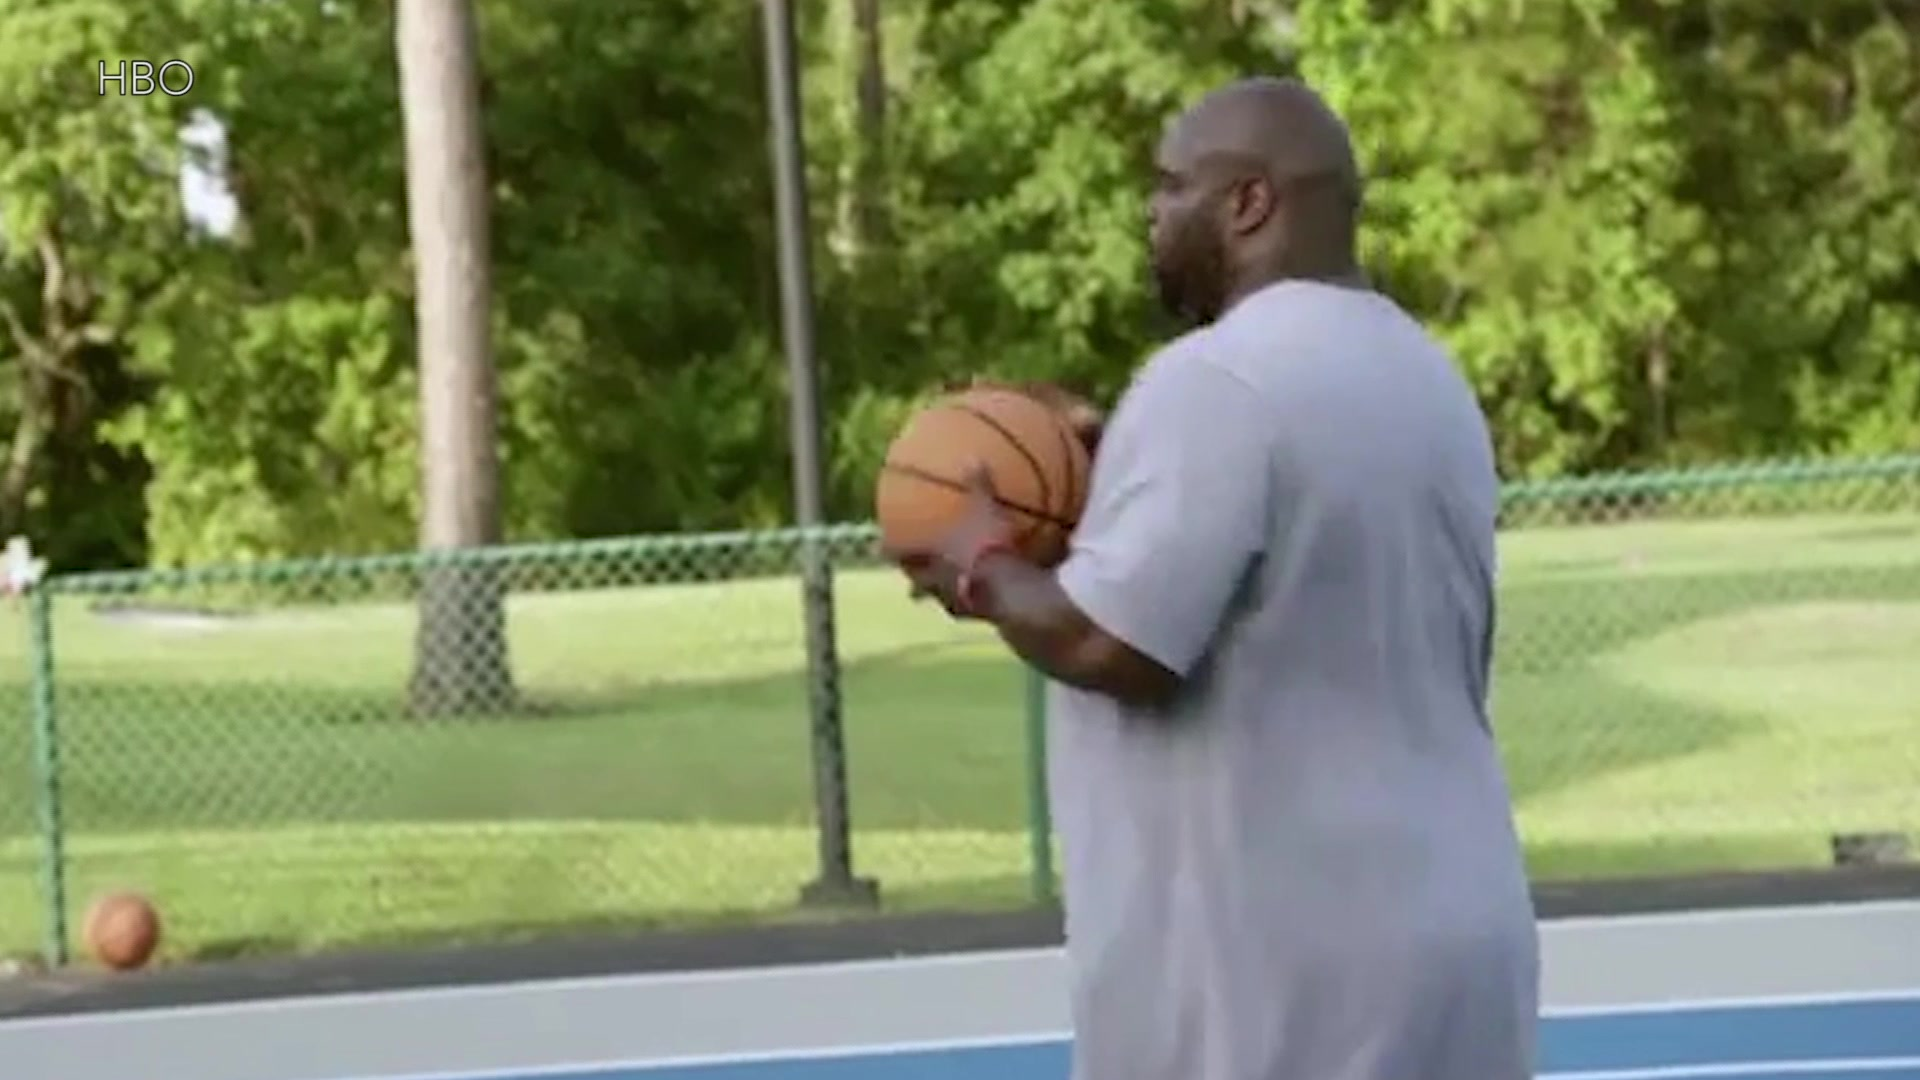 325-Pound Vince Wilfork Dominates Pickup Basketball